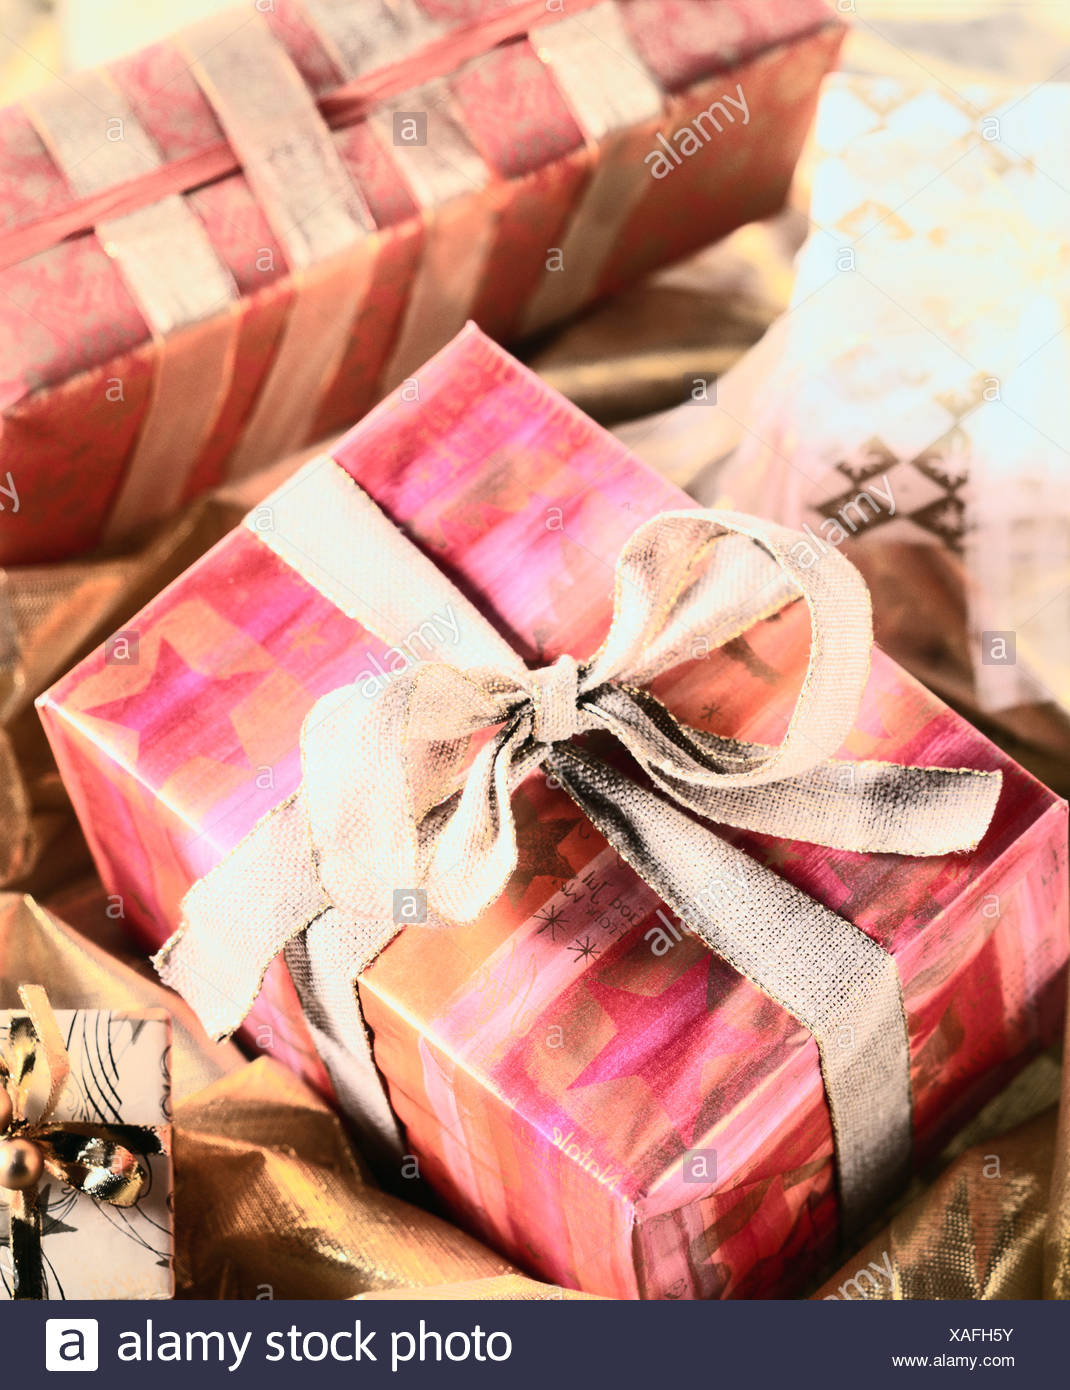 Wrapped gifts Stock Photo: 281855223 - Alamy